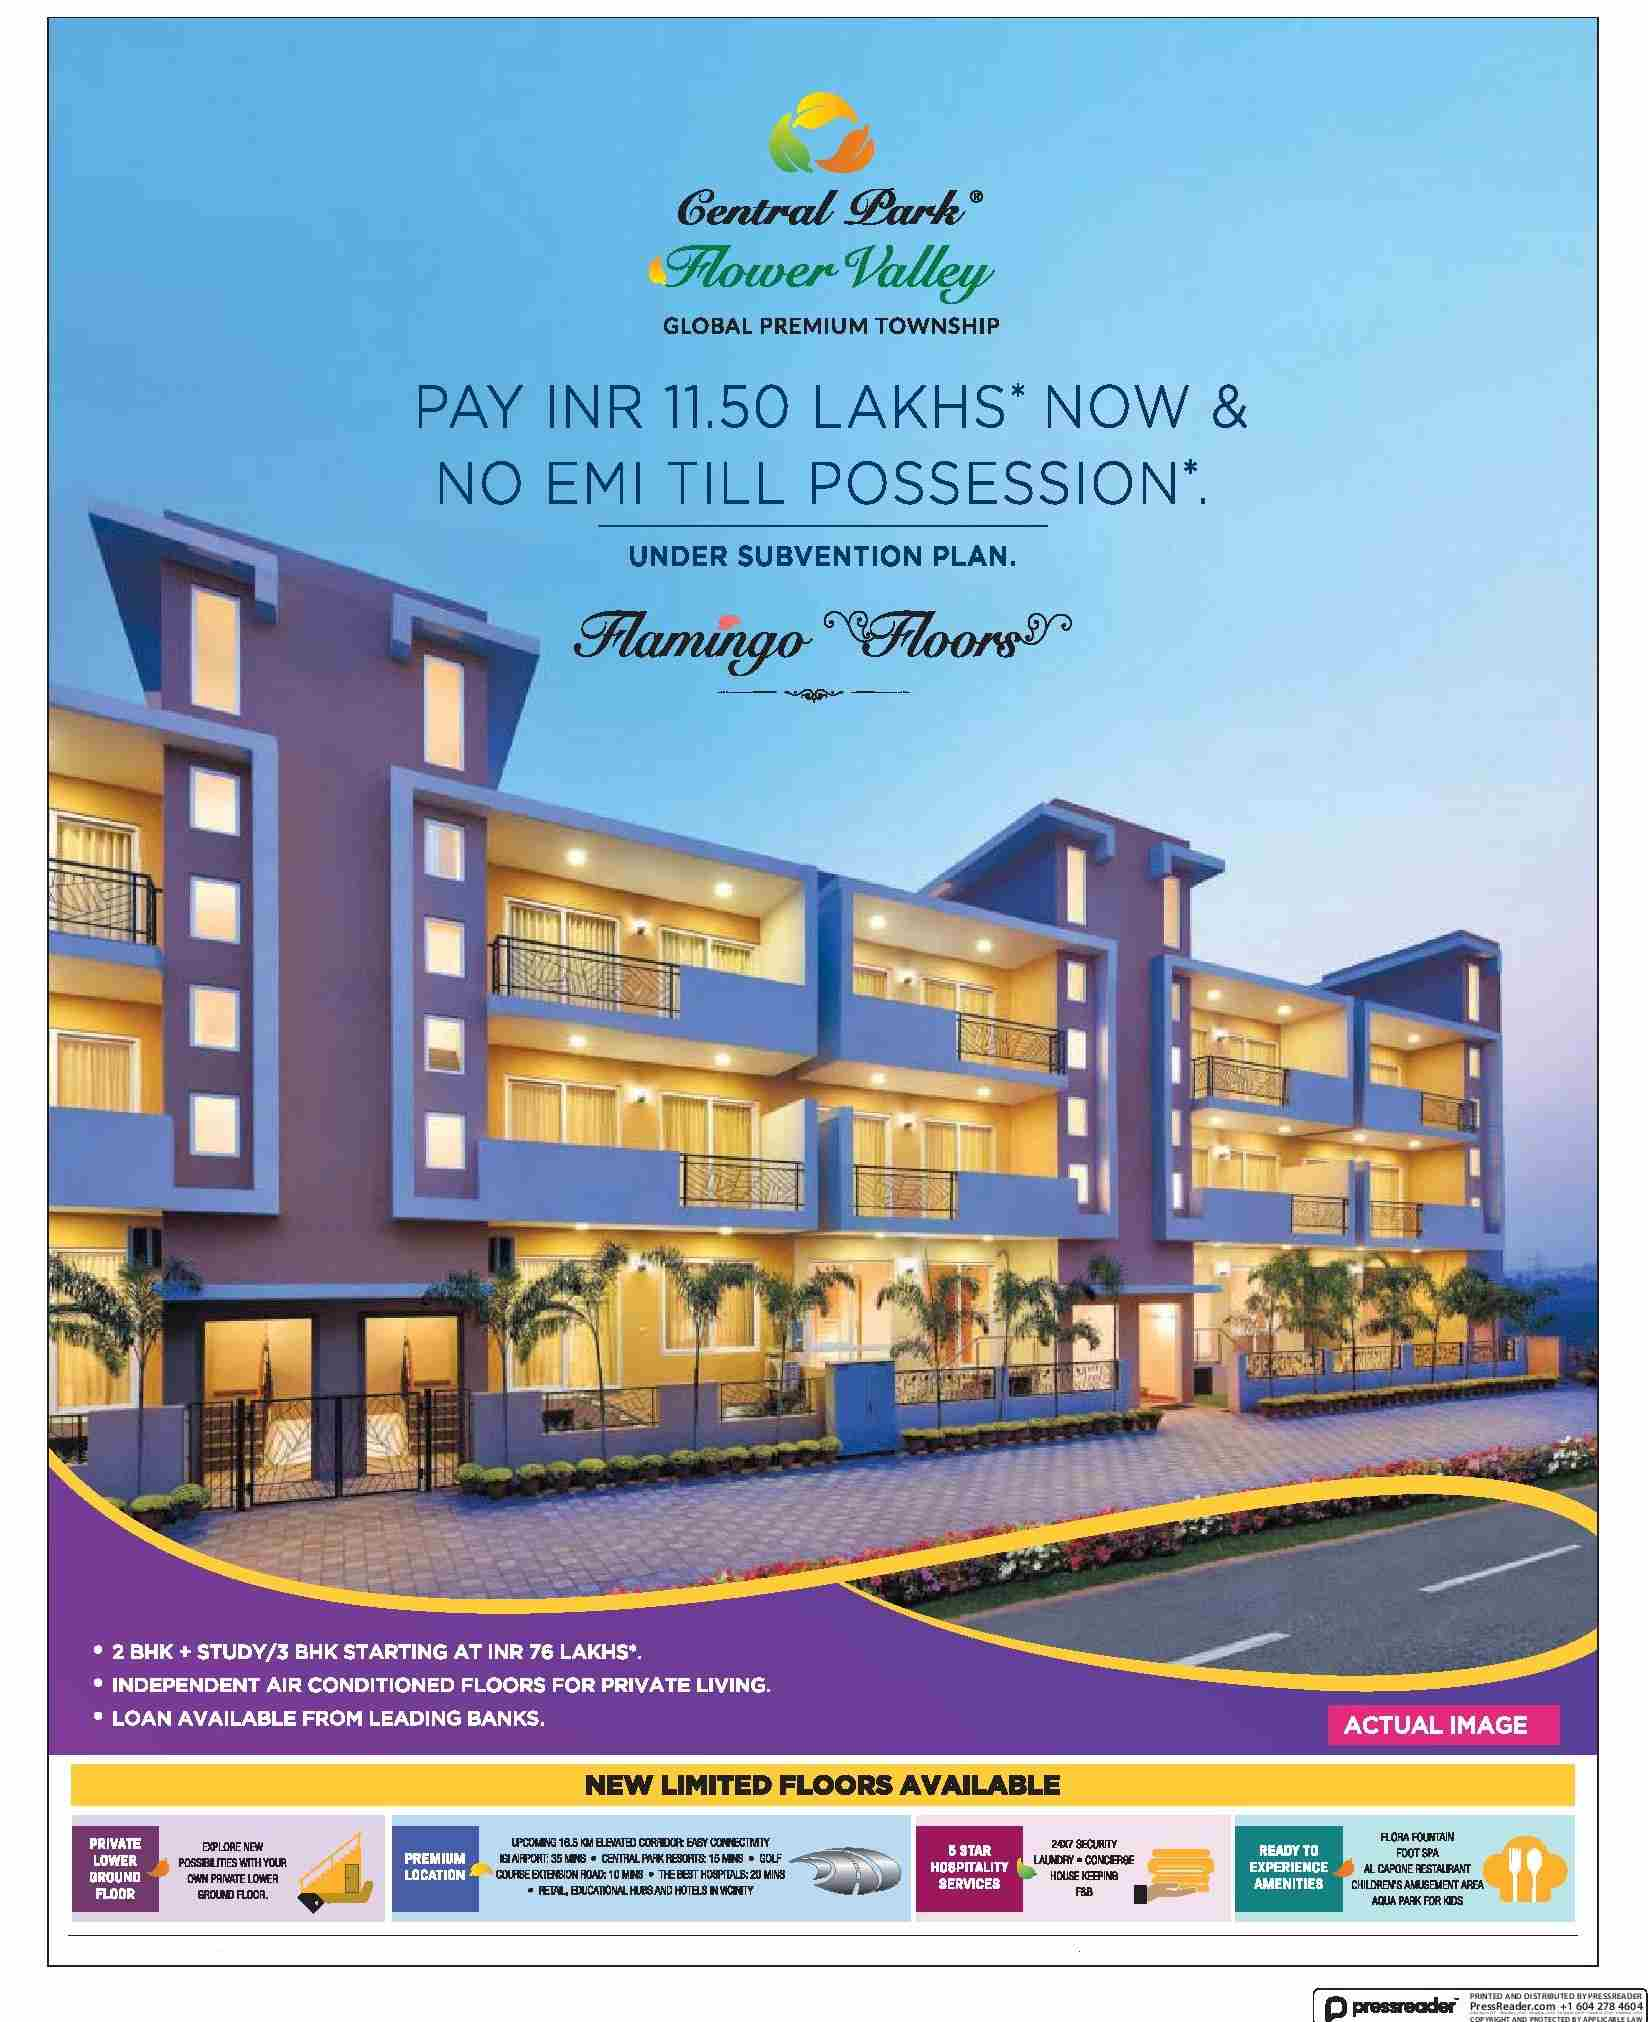 Pay Rs 11 5 Lacs now and no EMI till possession at Central Park 3 Flamingo Floors in Sohna